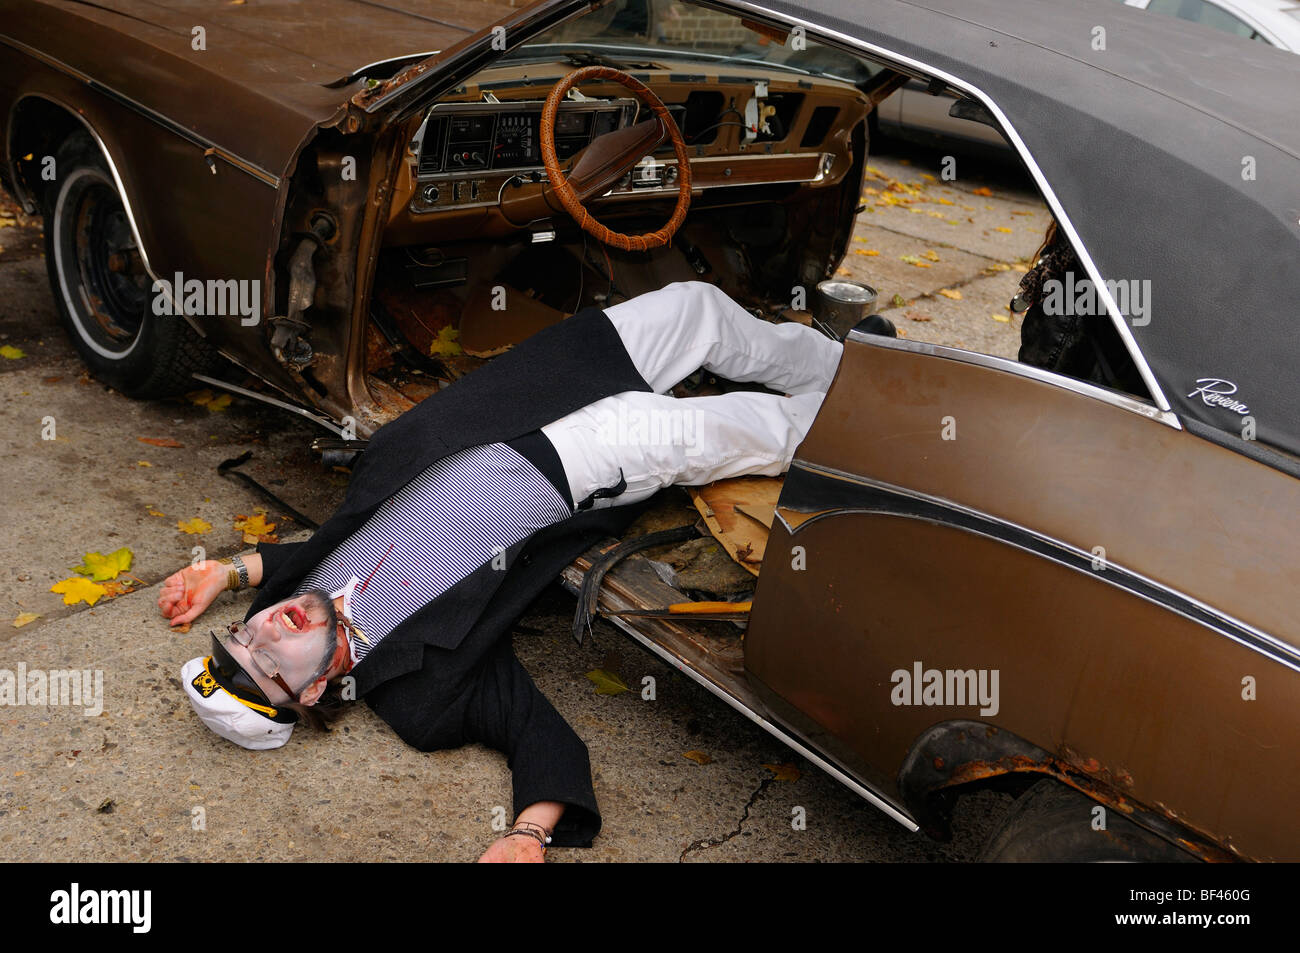 Undead sailor splayed out on a junked Buick Riviera car play acting at the Toronto Zombie Walk - Stock Image